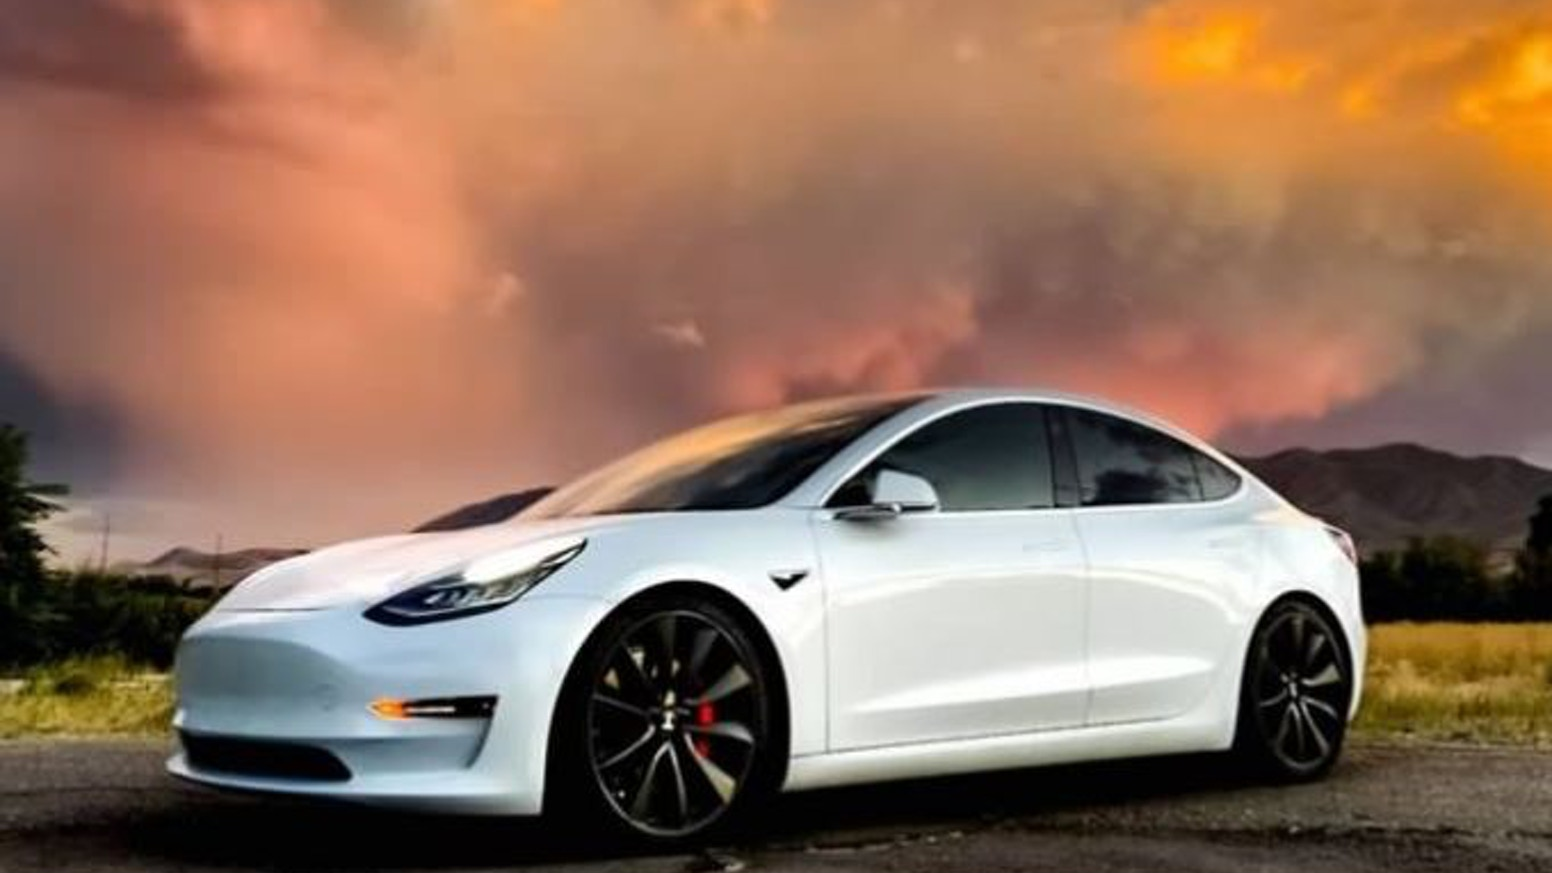 Chasing sunsets in a Tesla Model 3 - Calendars, Mouse pads, Postcards, Digital Photos